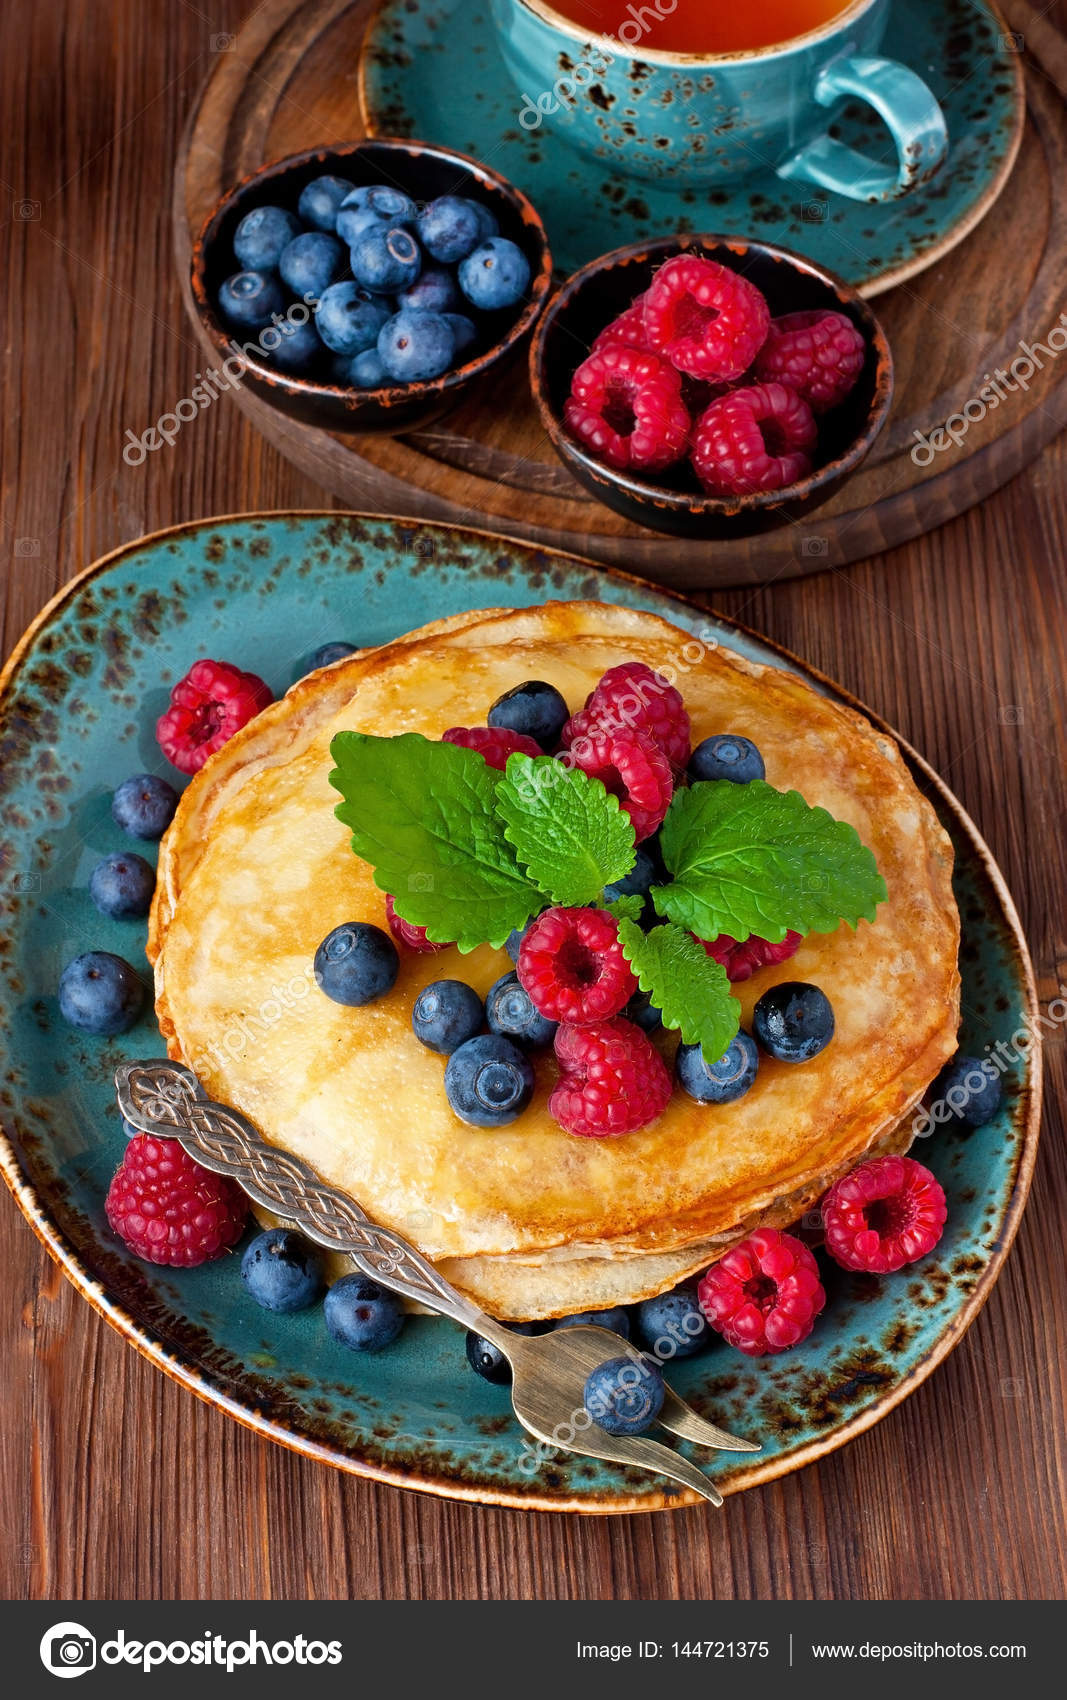 Dessert plate with pancakes and berries